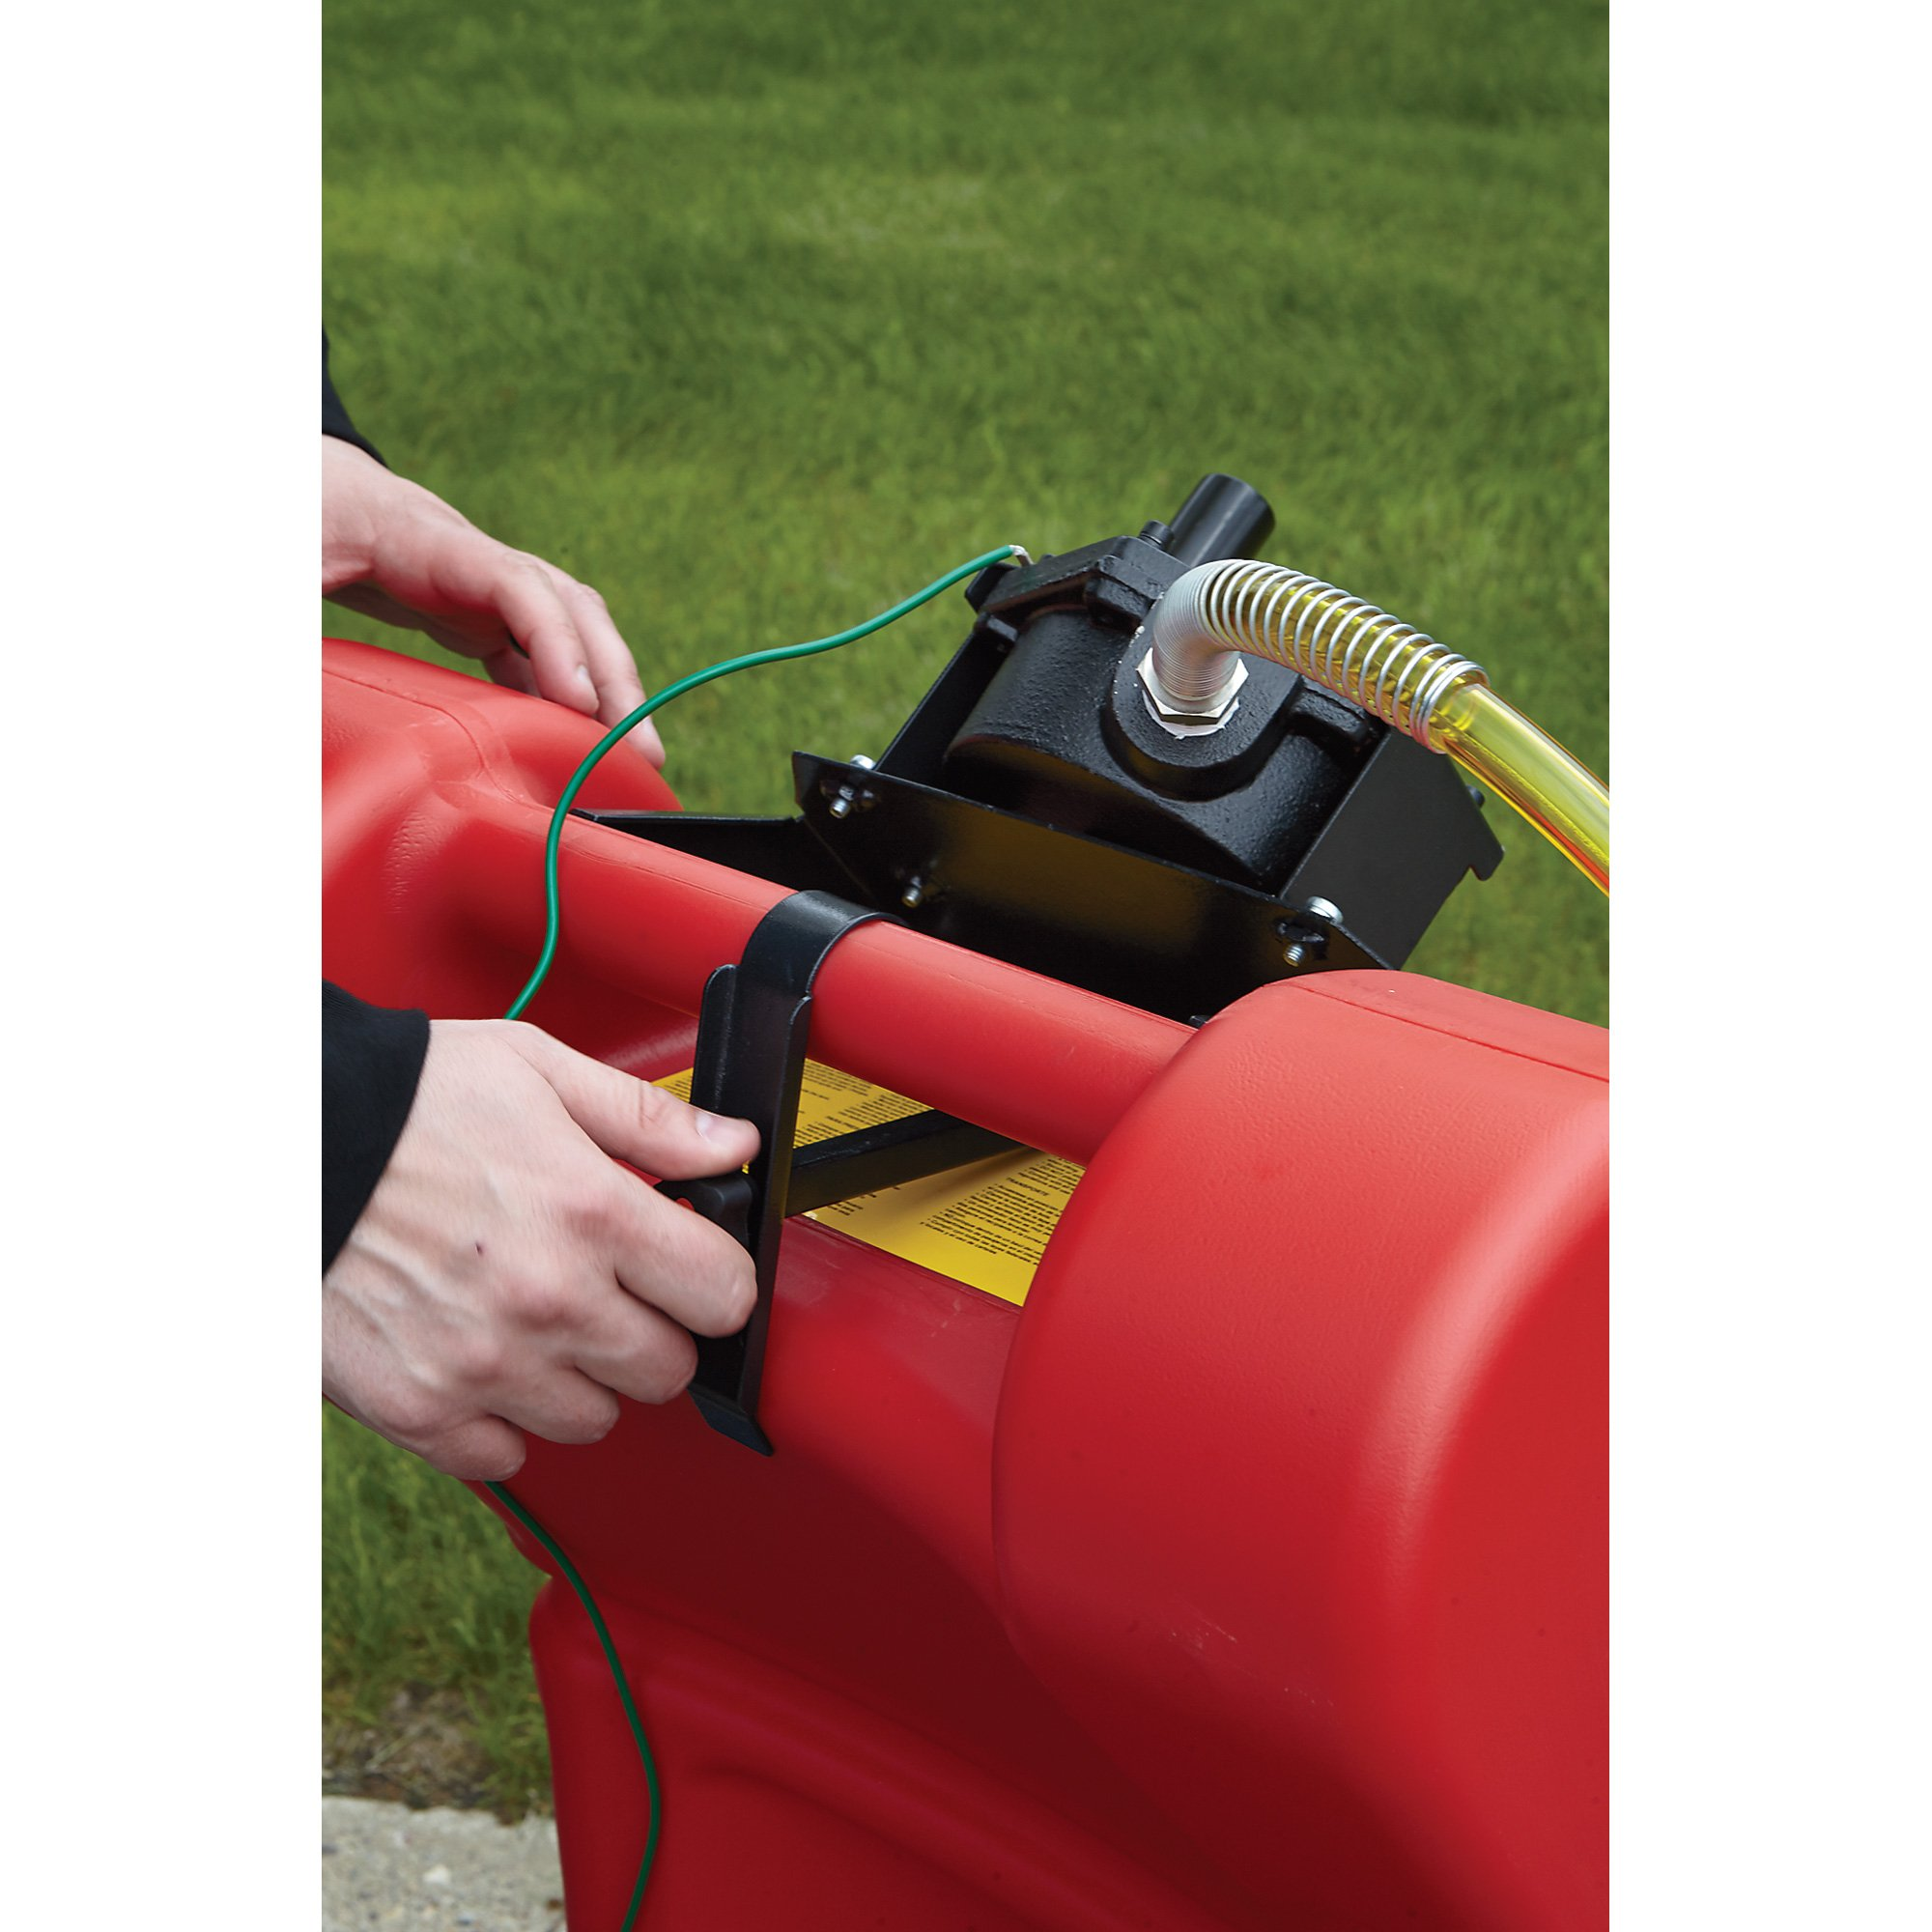 Roughneck 2-Way Rotary Gas Pump Kit